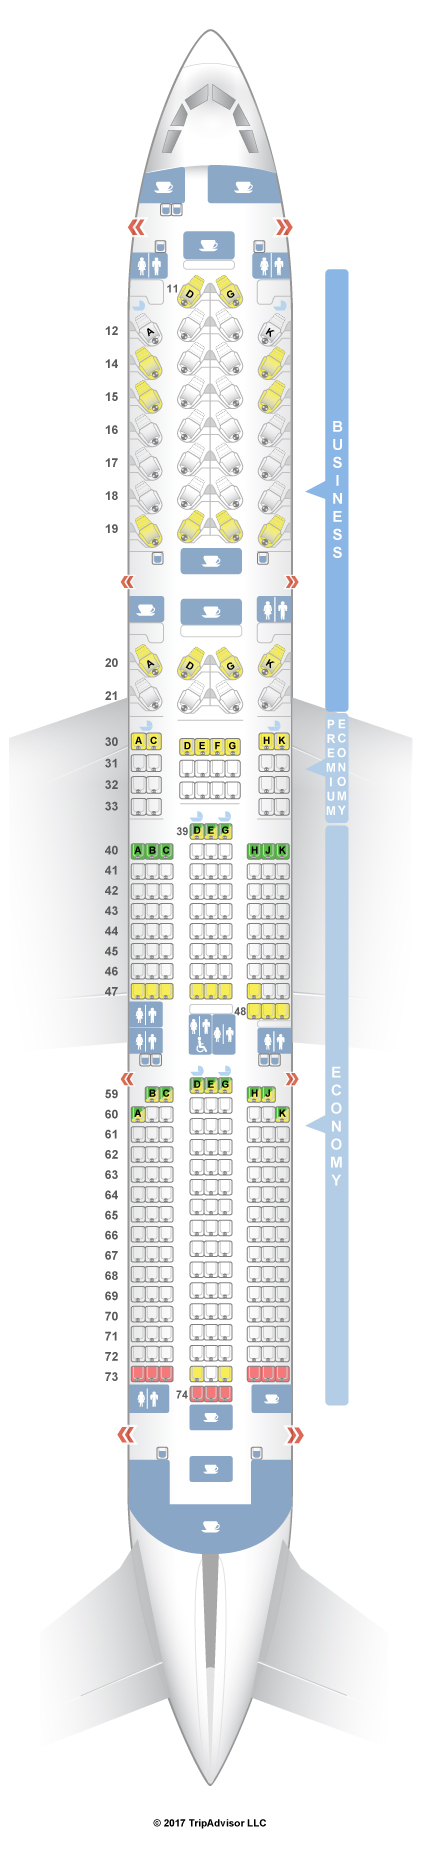 Cathay Pacific Seat Map SeatGuru Seat Map Cathay Pacific Airbus A350 900 (35G) Cathay Pacific Seat Map